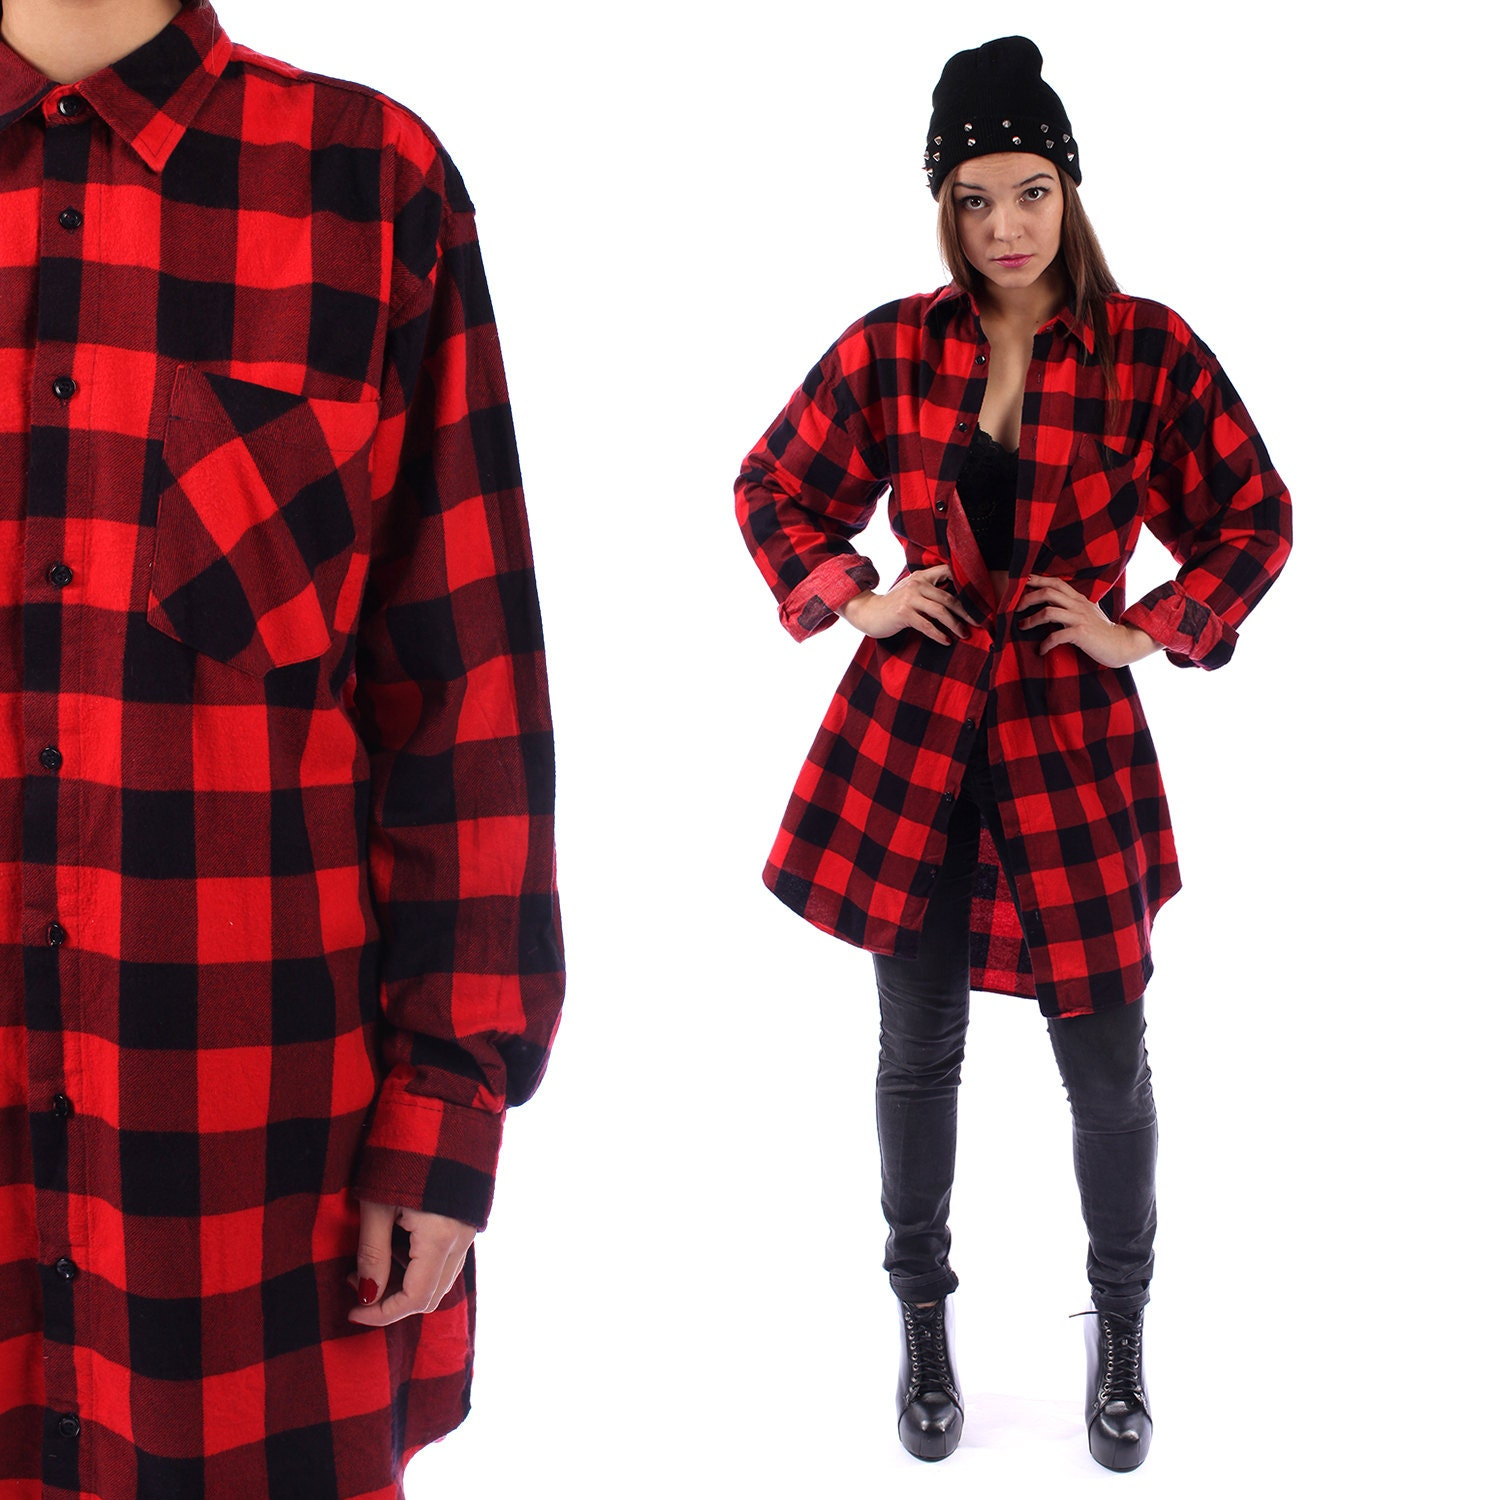 Red Buffalo Plaid Flannel Shirt 90s Grunge Red Black 1990s